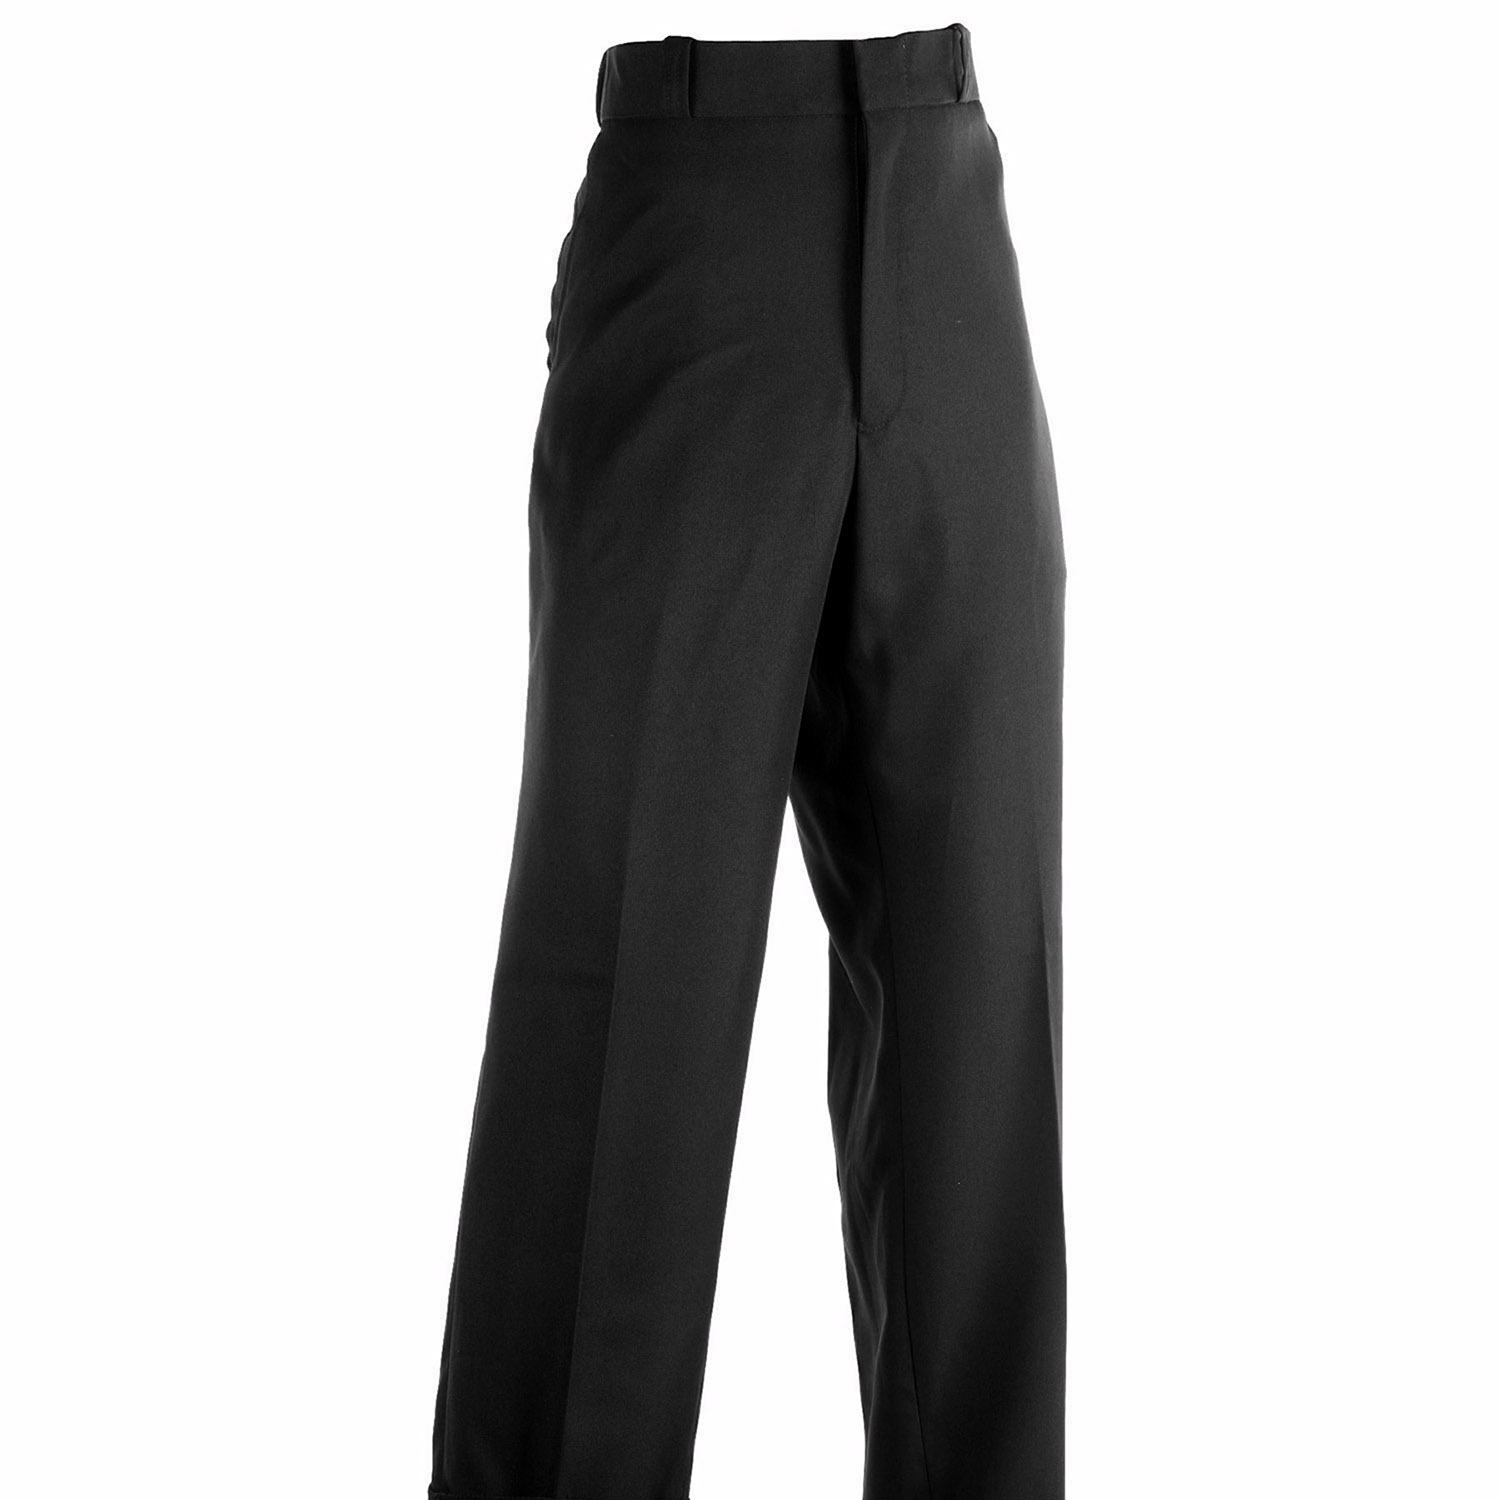 LawPro 100% Polyester Uniform Trousers